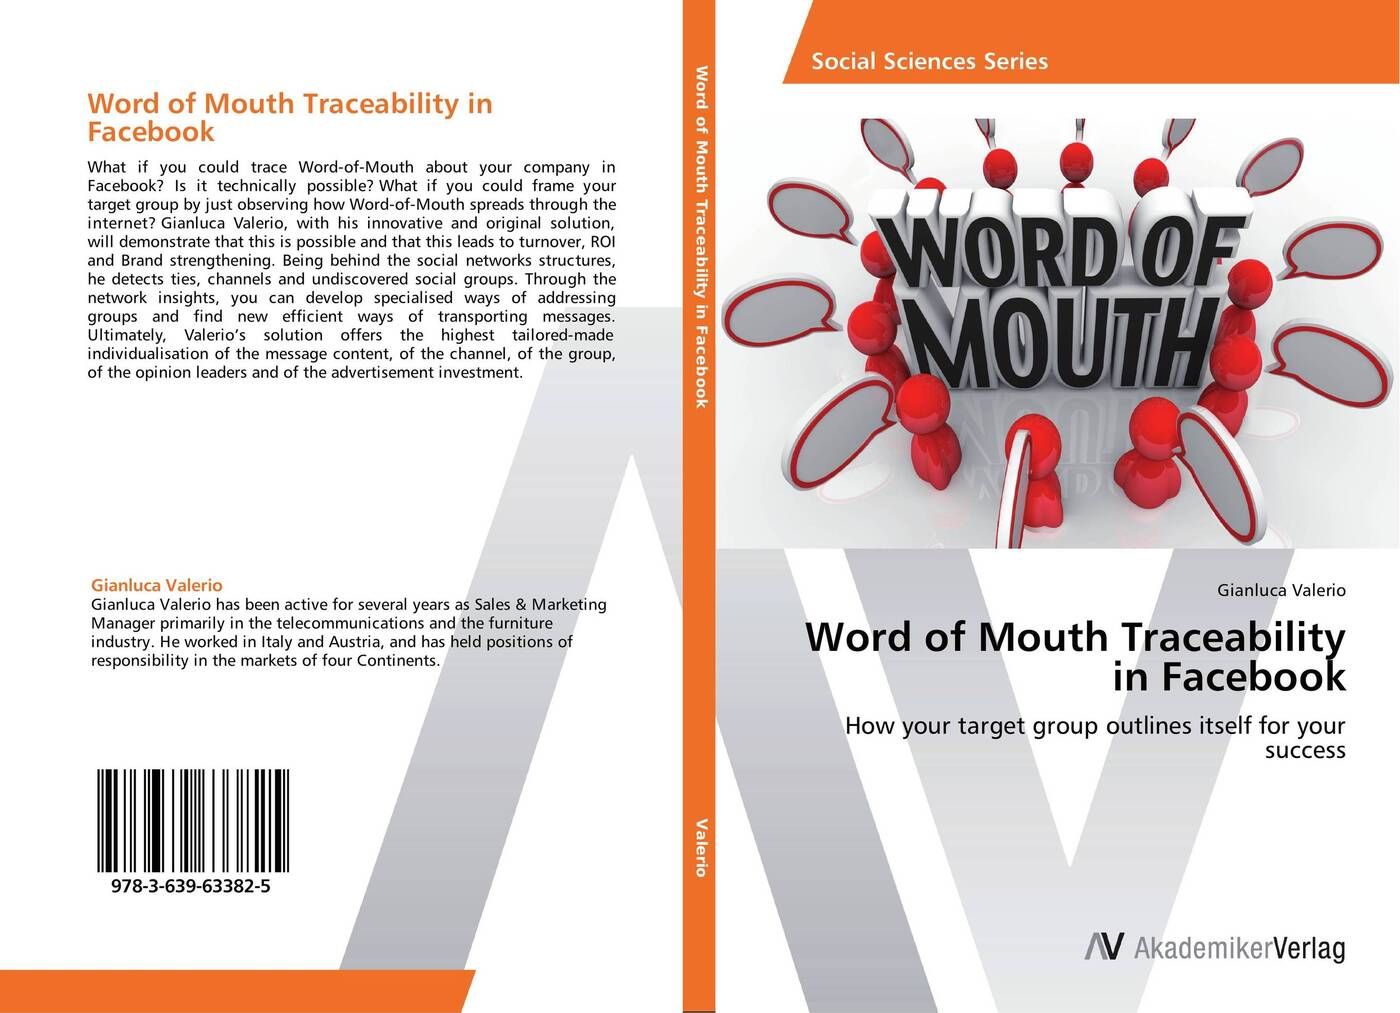 Gianluca Valerio Word of Mouth Traceability in Facebook lennon j skywriting by word of mouth